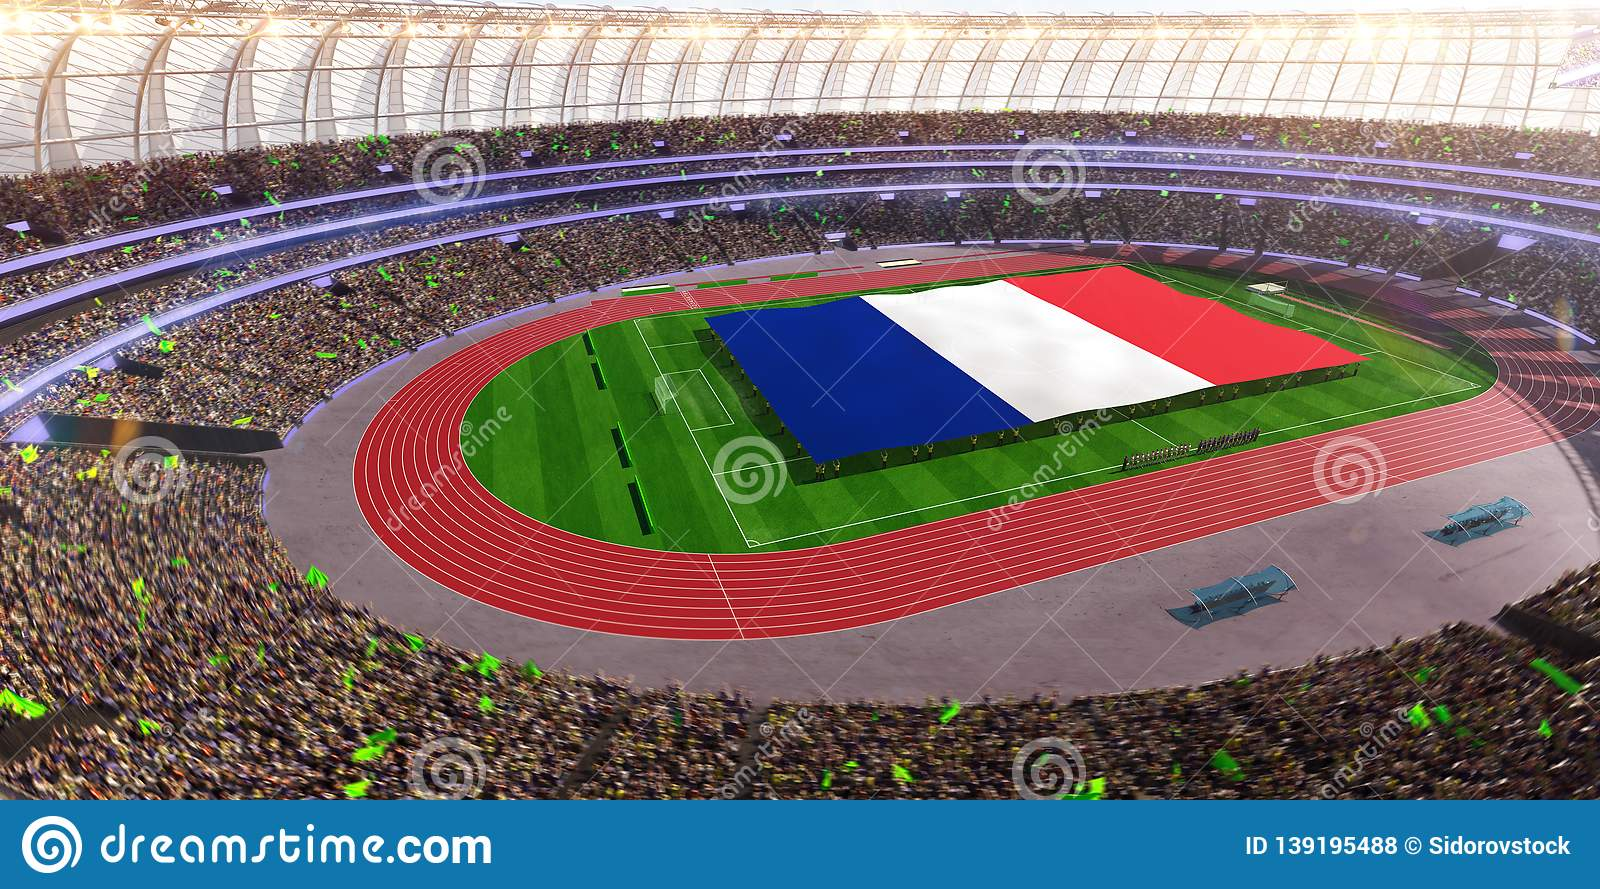 People hold France flag in stadium arena. field 3d photorealistic render